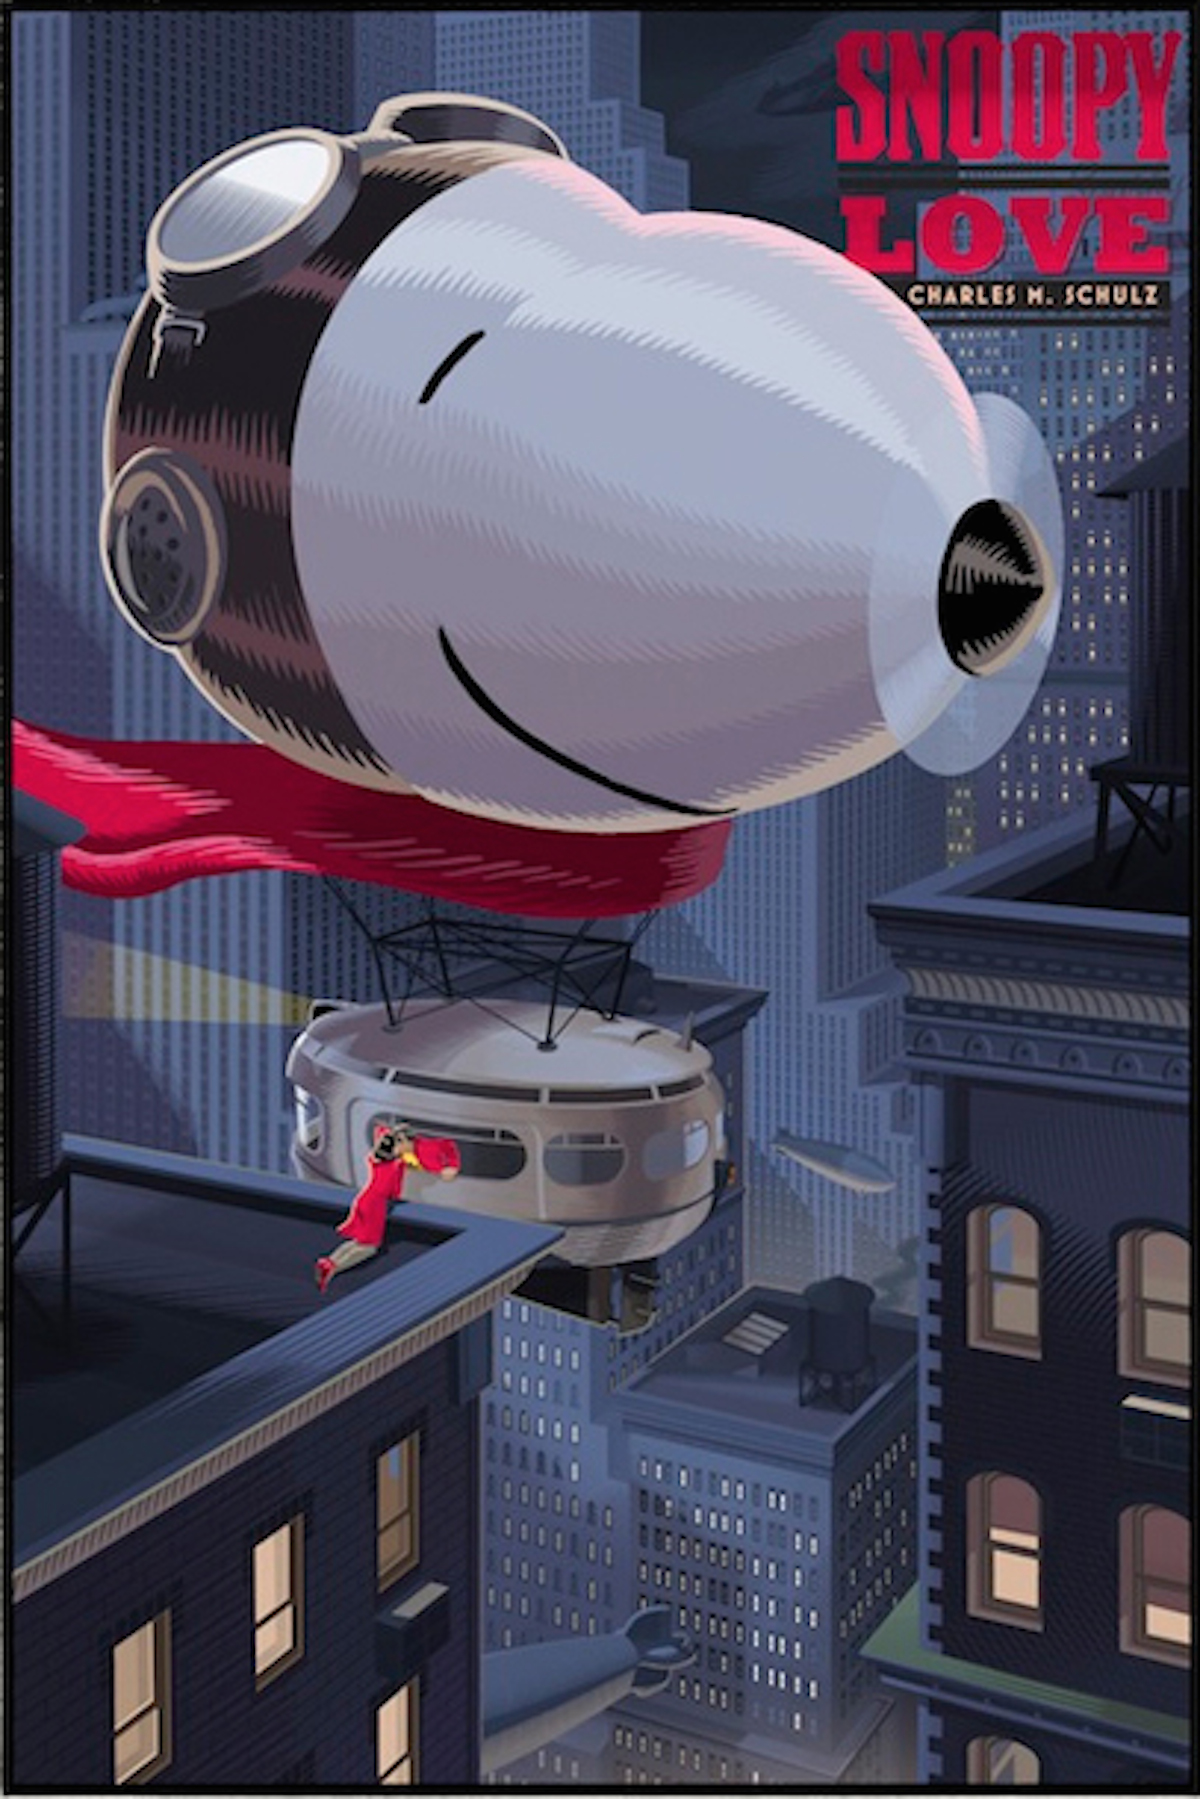 Peanuts, Snoopy Retro-Futuristic World of Laurent Durieux